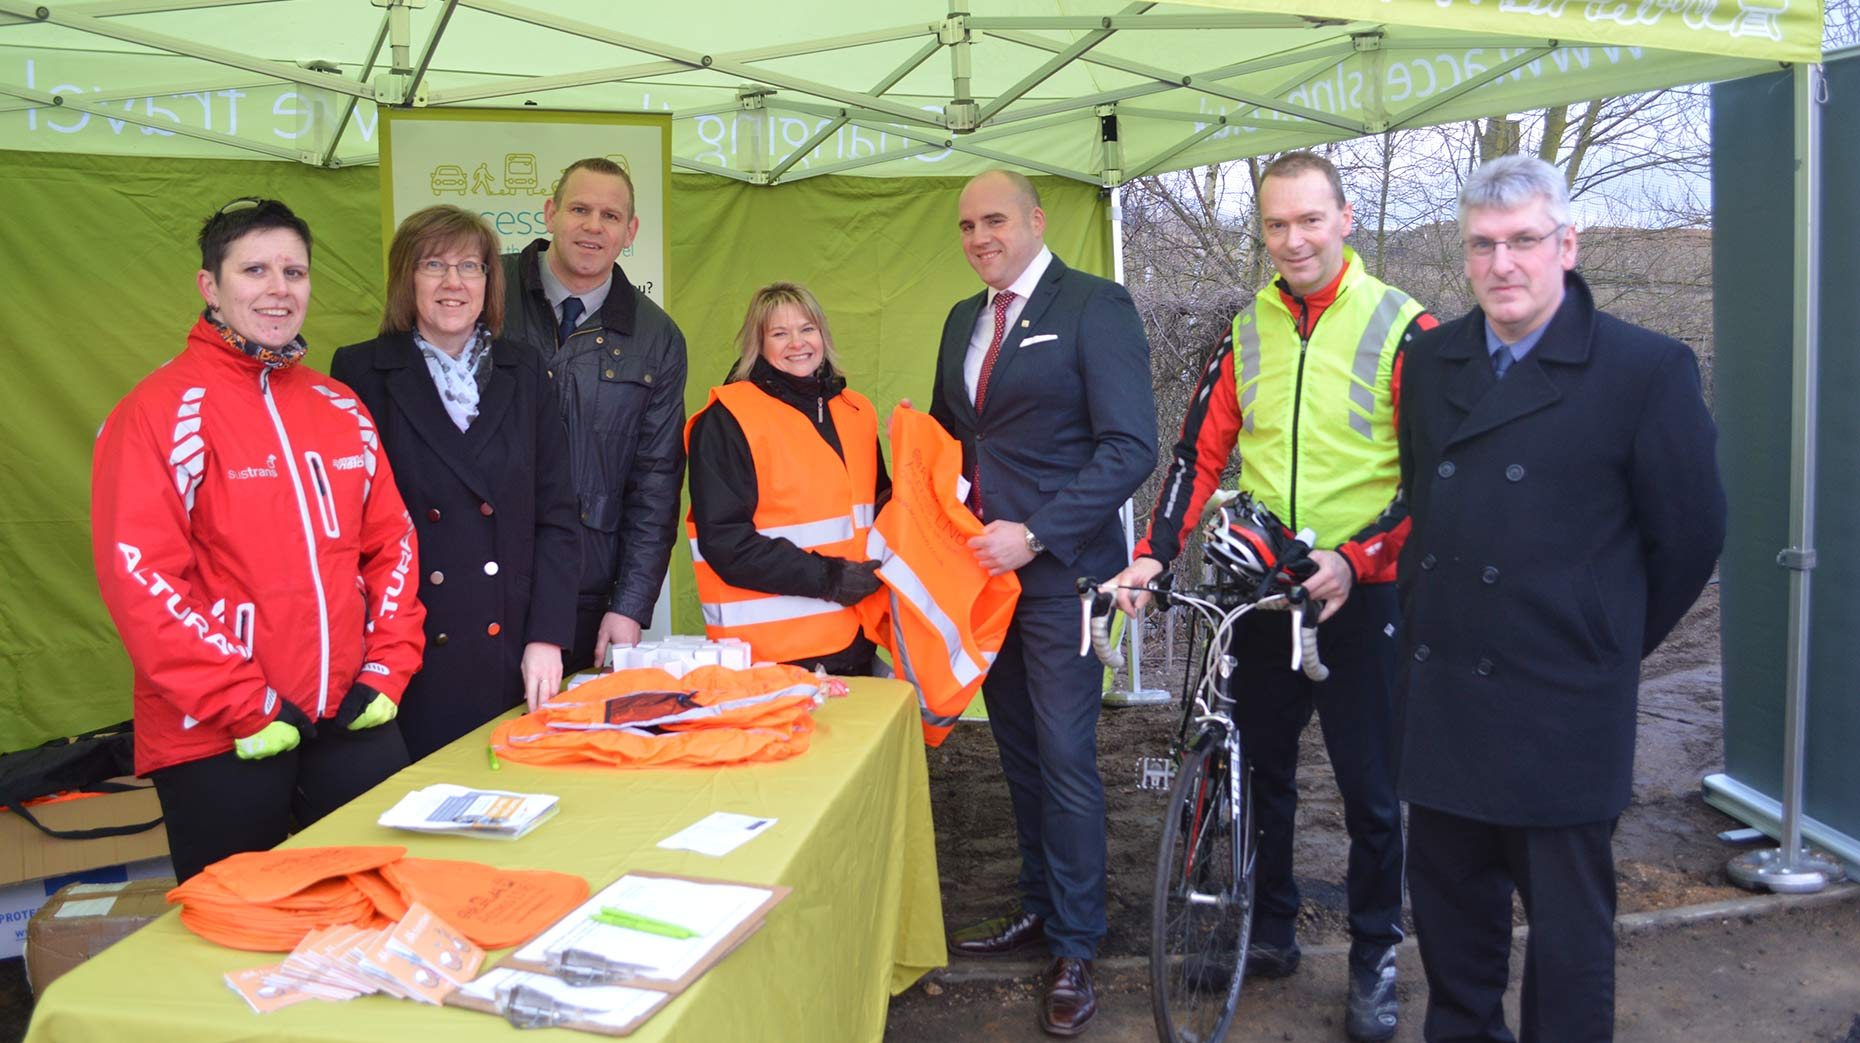 The team celebrated the official opening with a winter safety event.